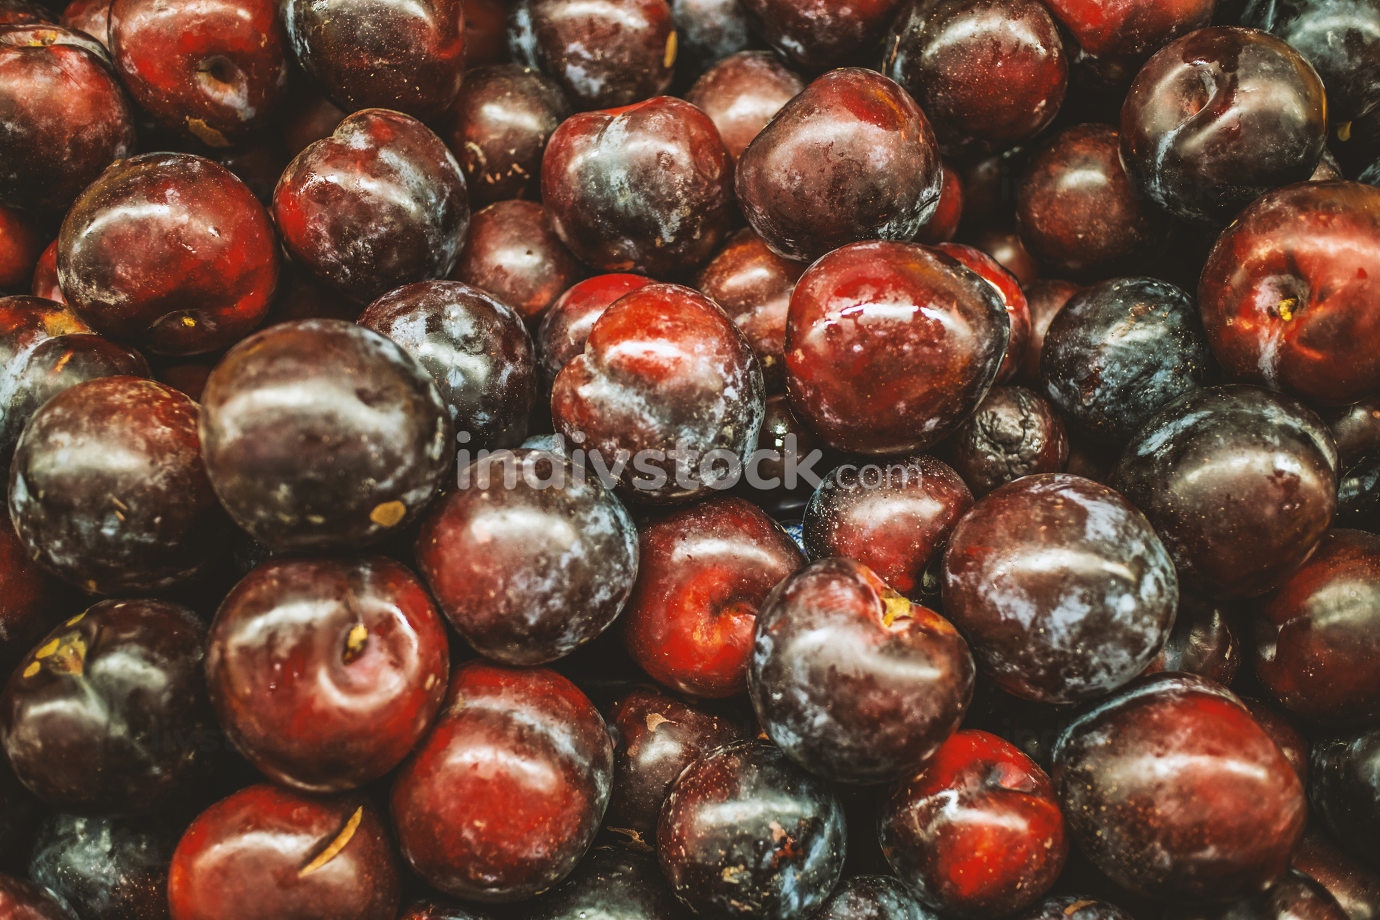 Ripe Plums (Blackthorns) Background, Texture